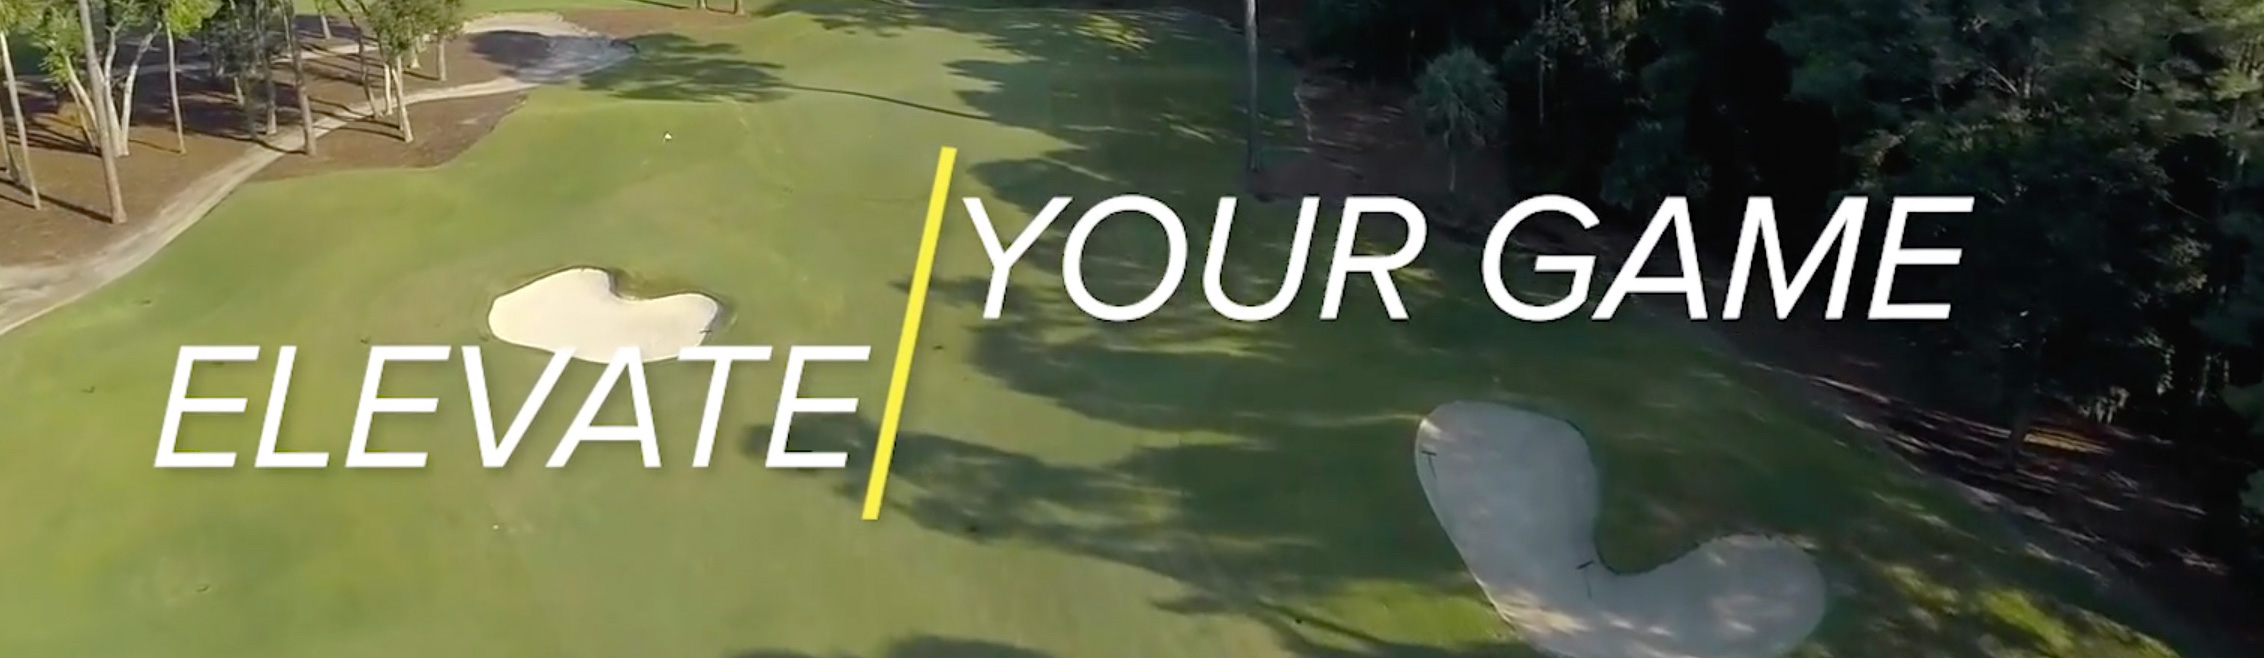 Looking for an easy way to improve your golf game? Try watching TV!